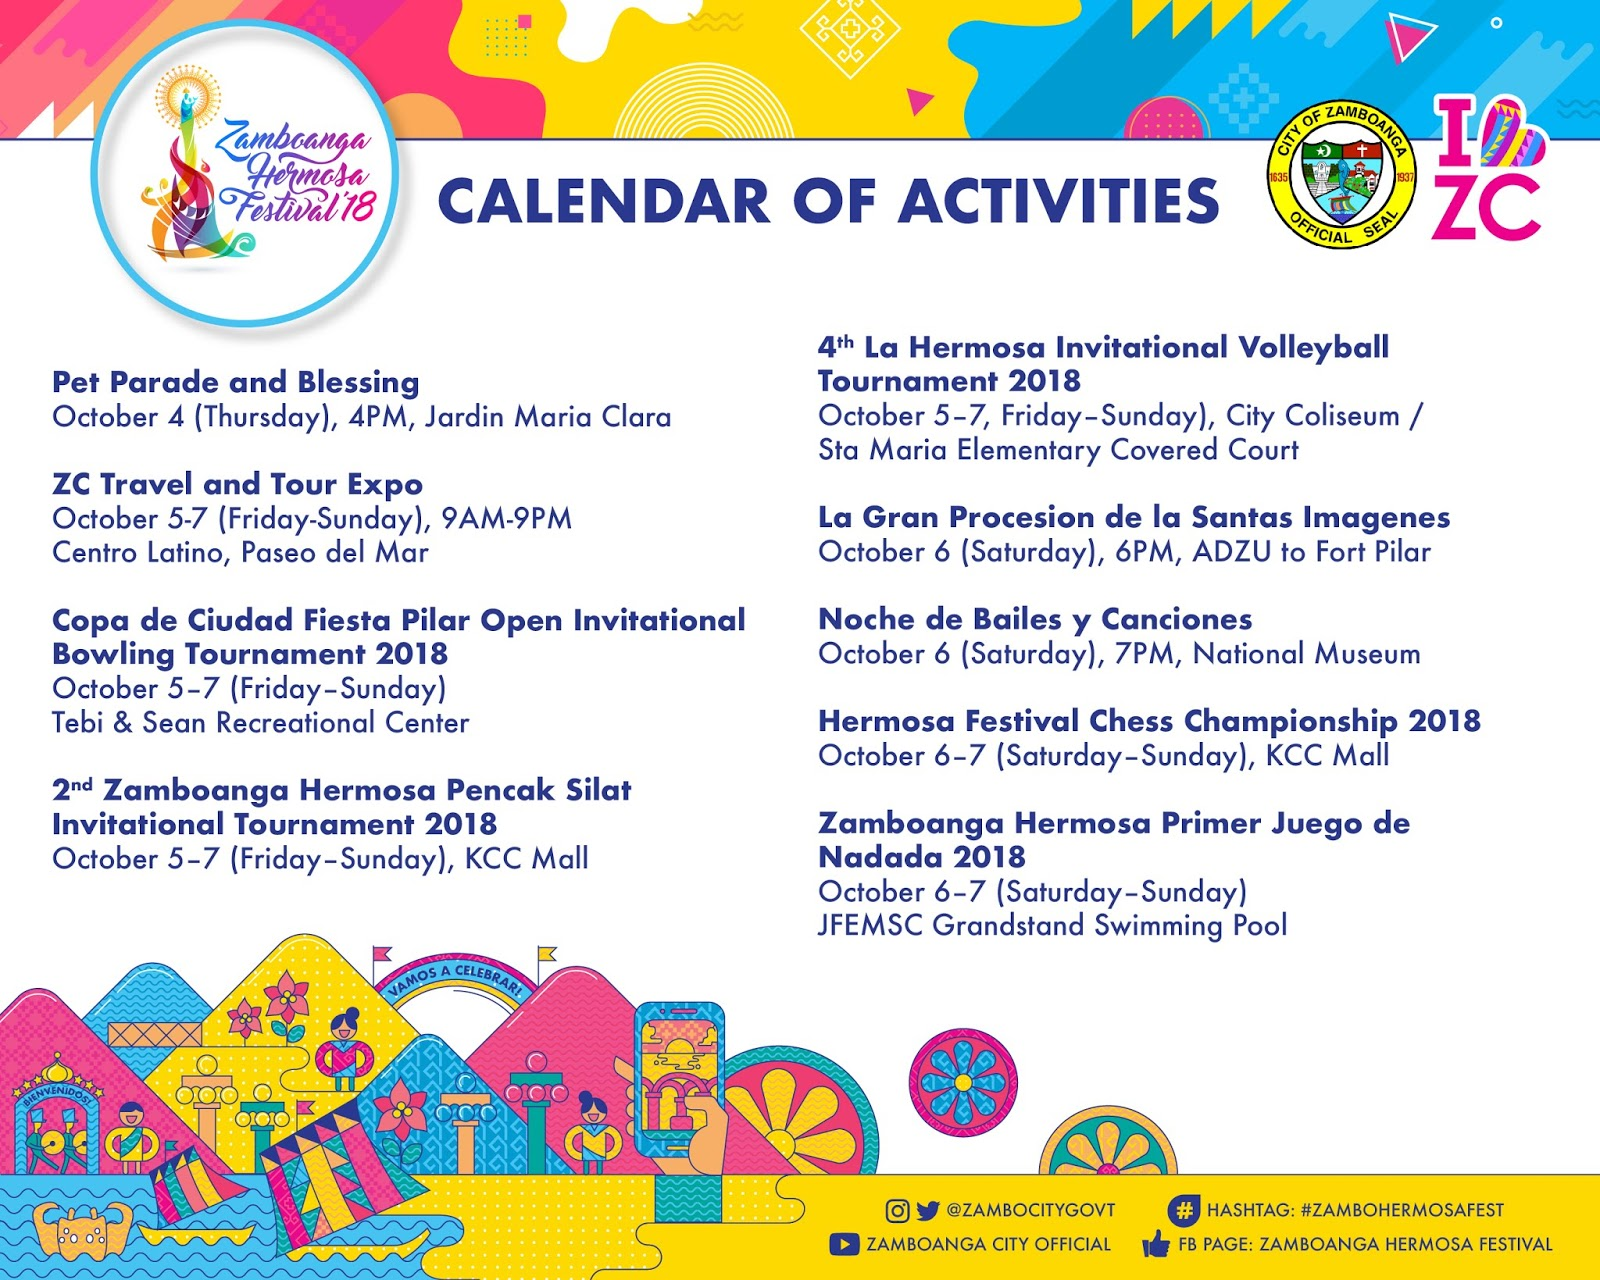 zamboanga hermosa festival 2018 calendar of activities